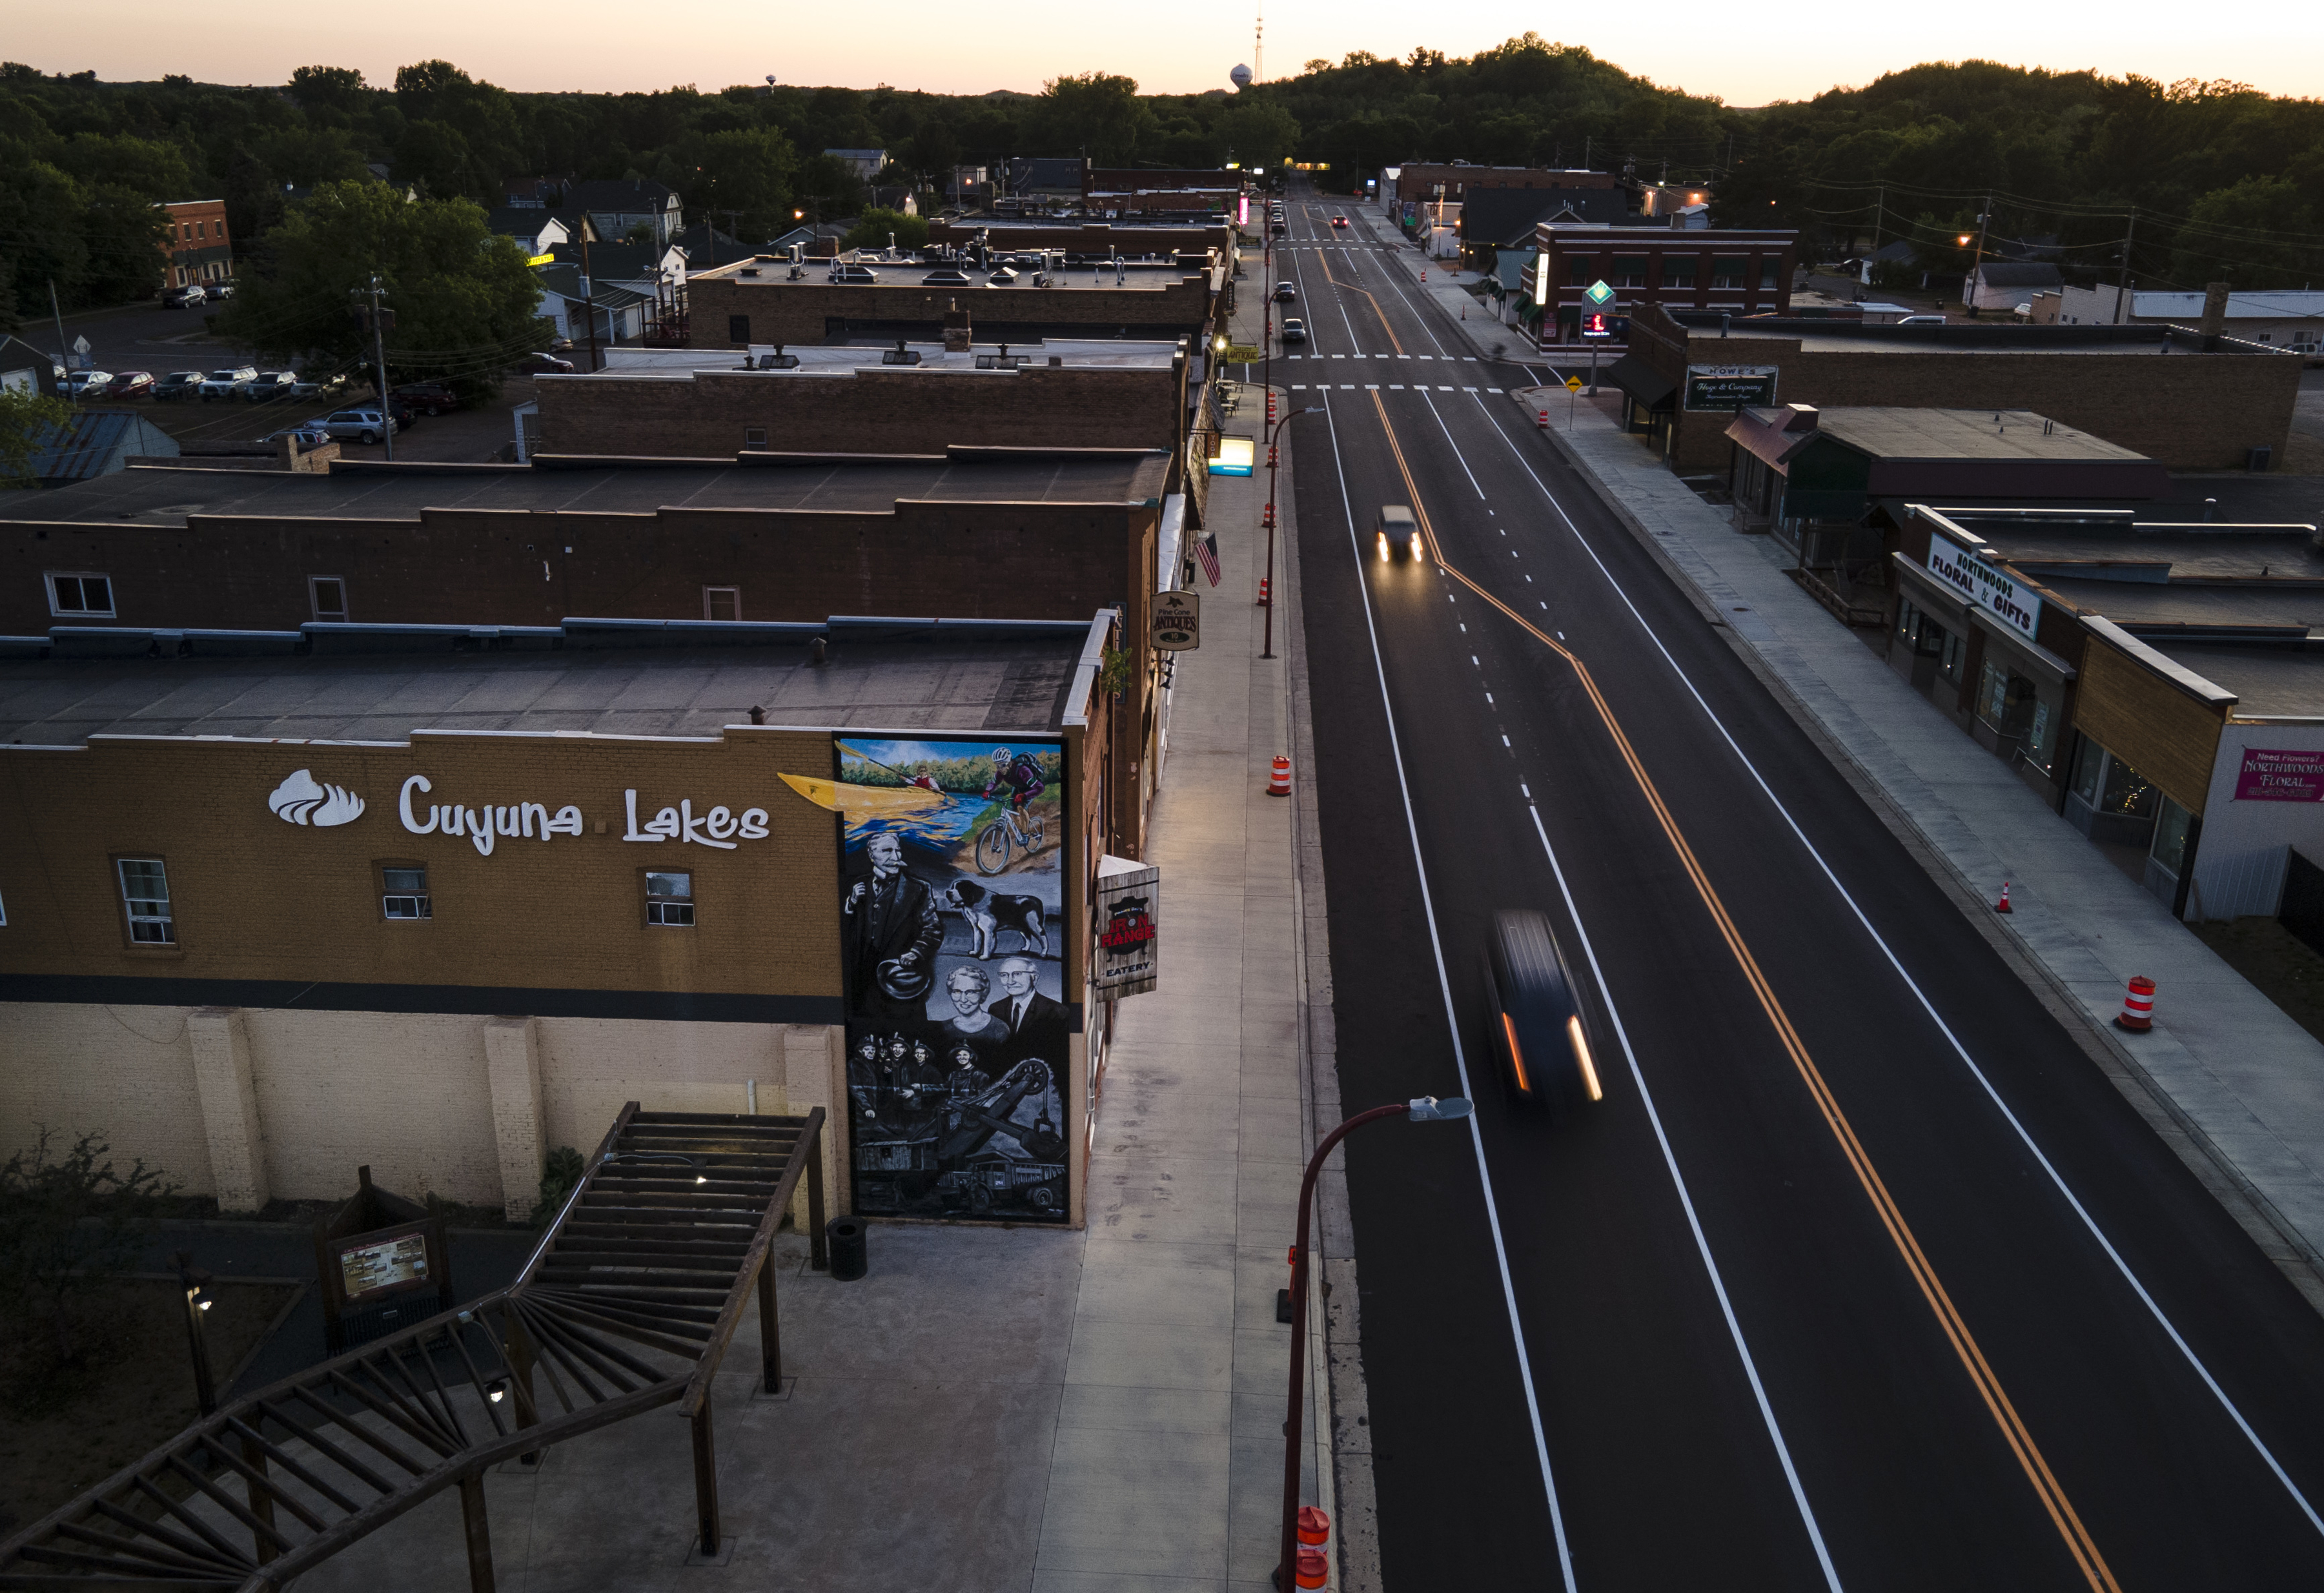 A summer's night on Crosby's Main Street belied a community buzzing with activity.